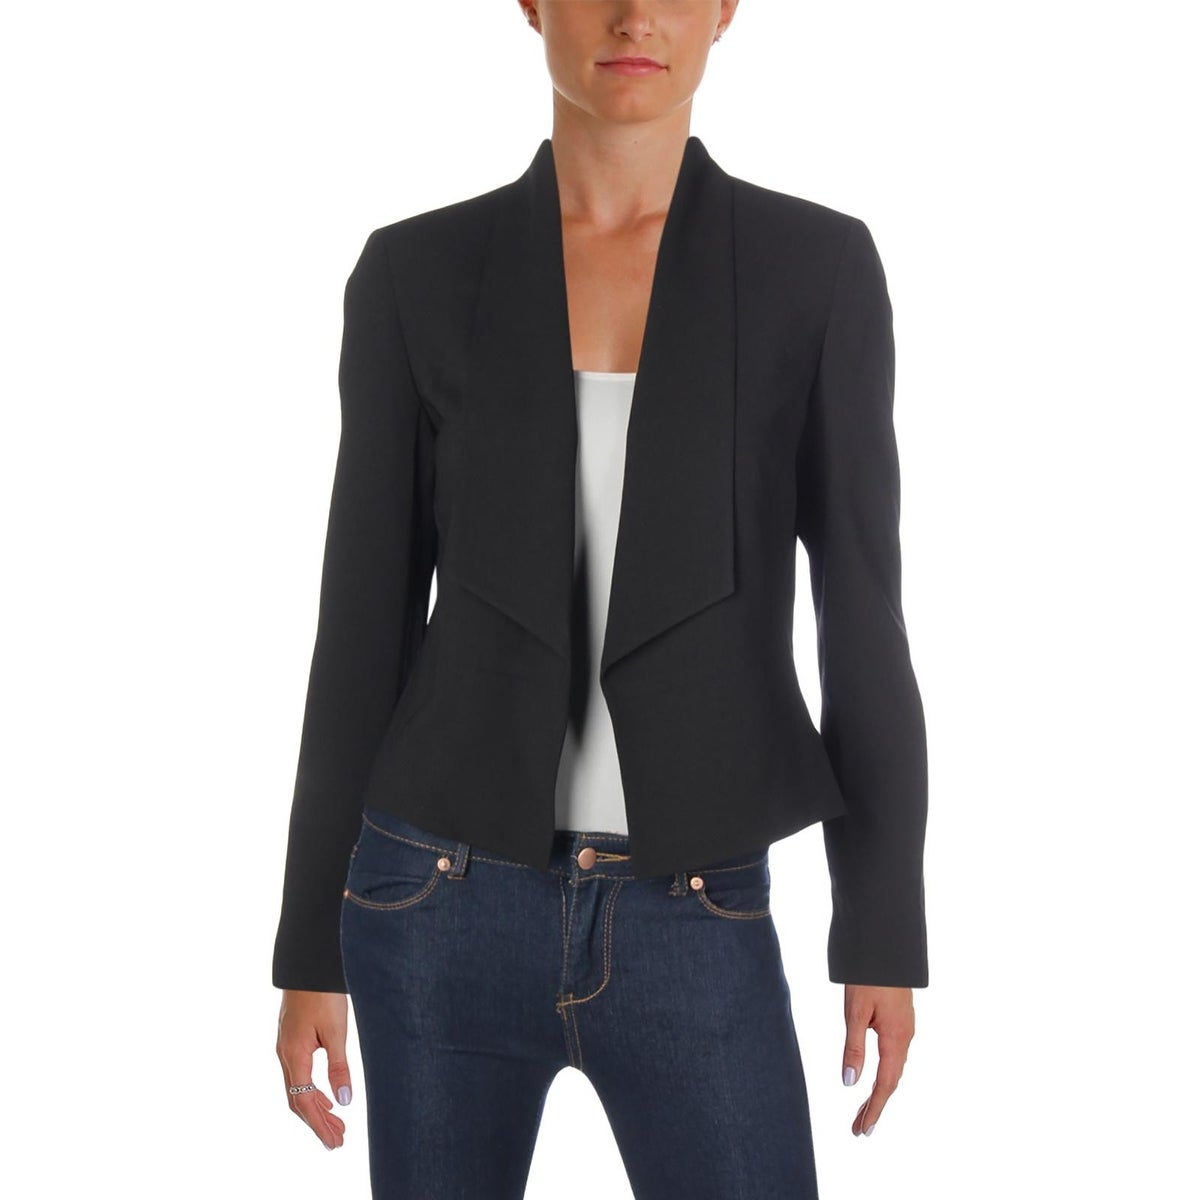 8e60a94743b Shop Nine West Womens Open-Front Blazer Shawl Collar Work Wear - Free  Shipping On Orders Over  45 - Overstock - 25697018